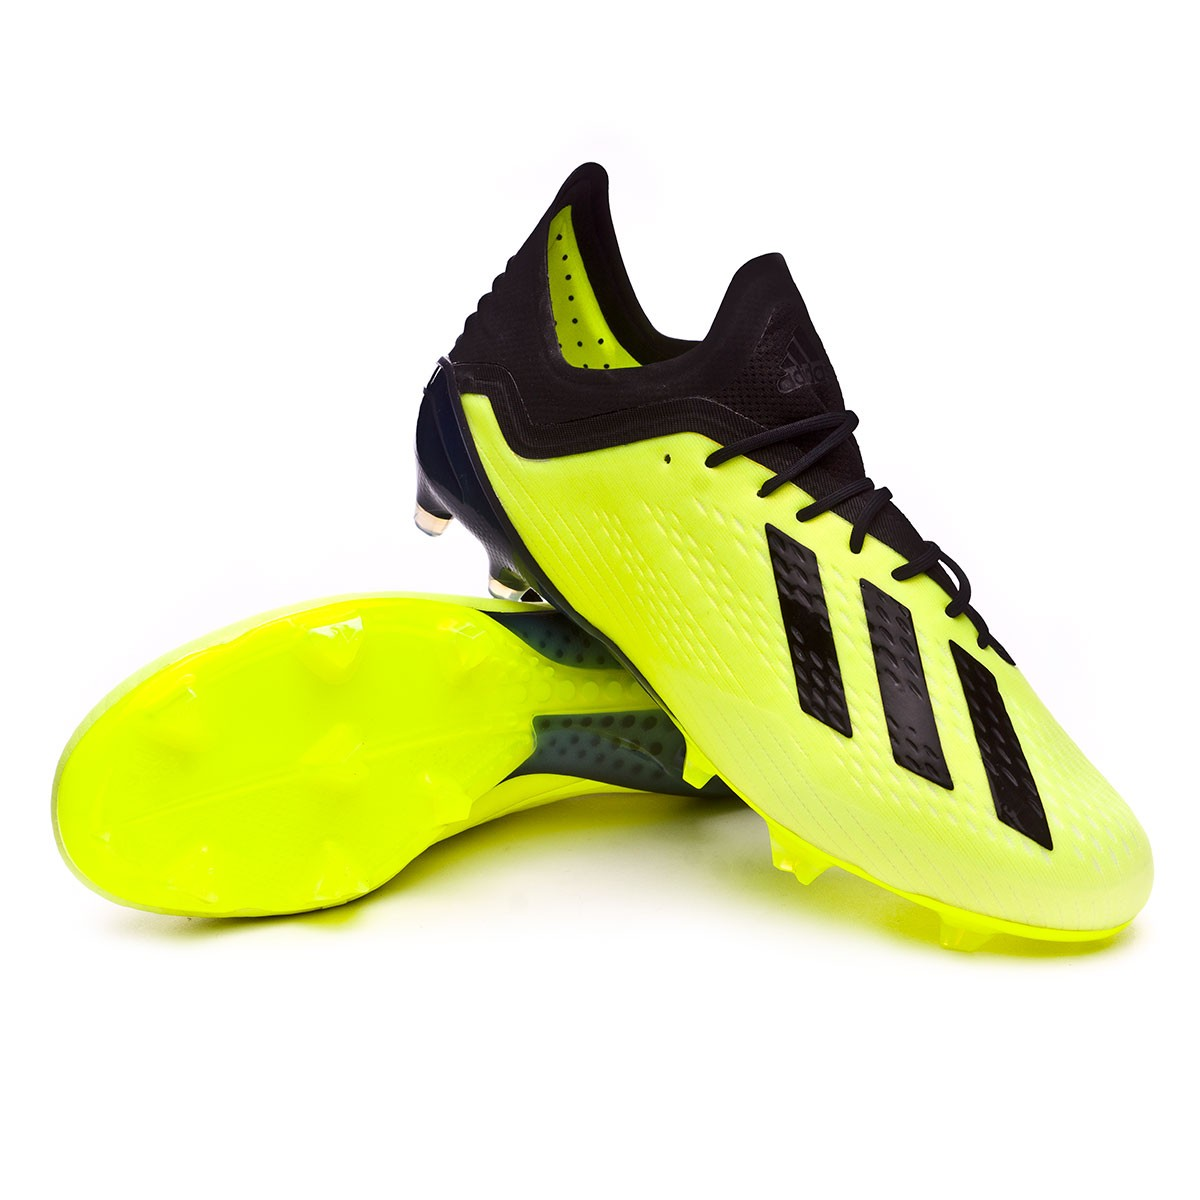 low priced 9bfca 85a10 adidas X 18.1 FG Football Boots. Solar yellow-Core black-White ...